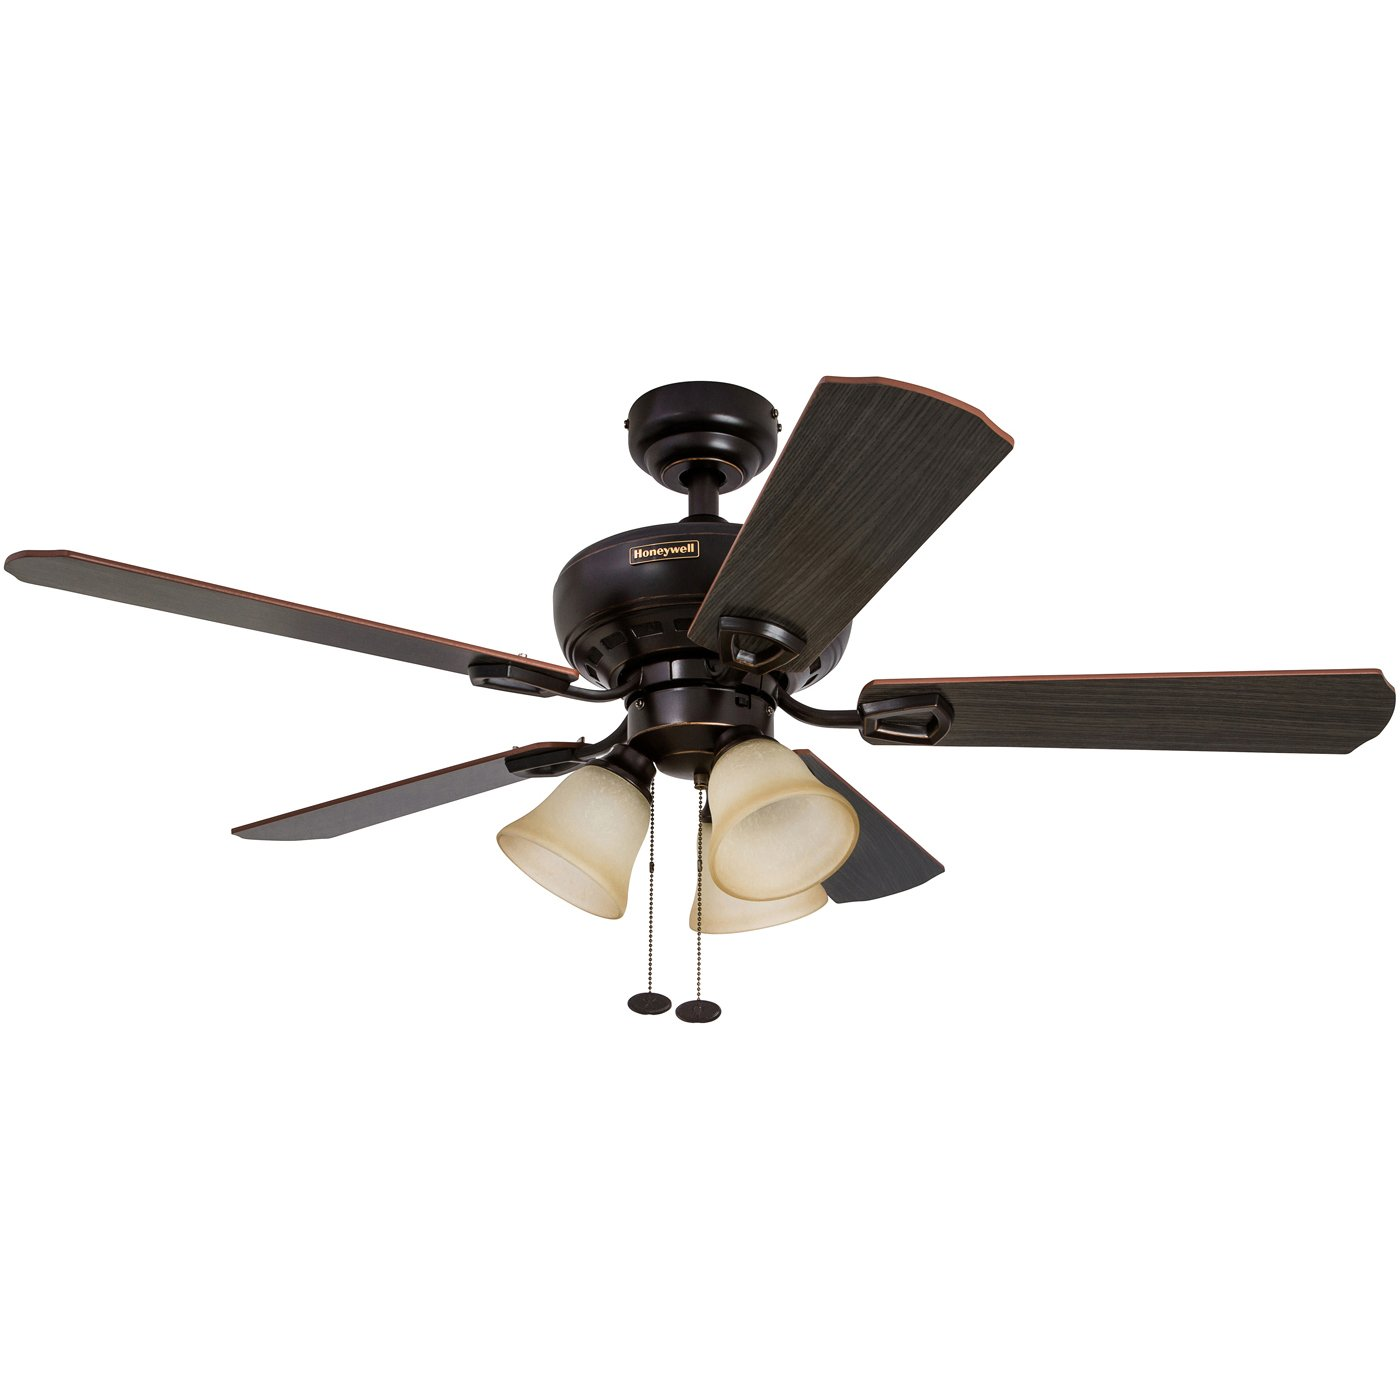 Amazon Honeywell Springhill 44 Inch Ceiling Fan with 3 Sunset